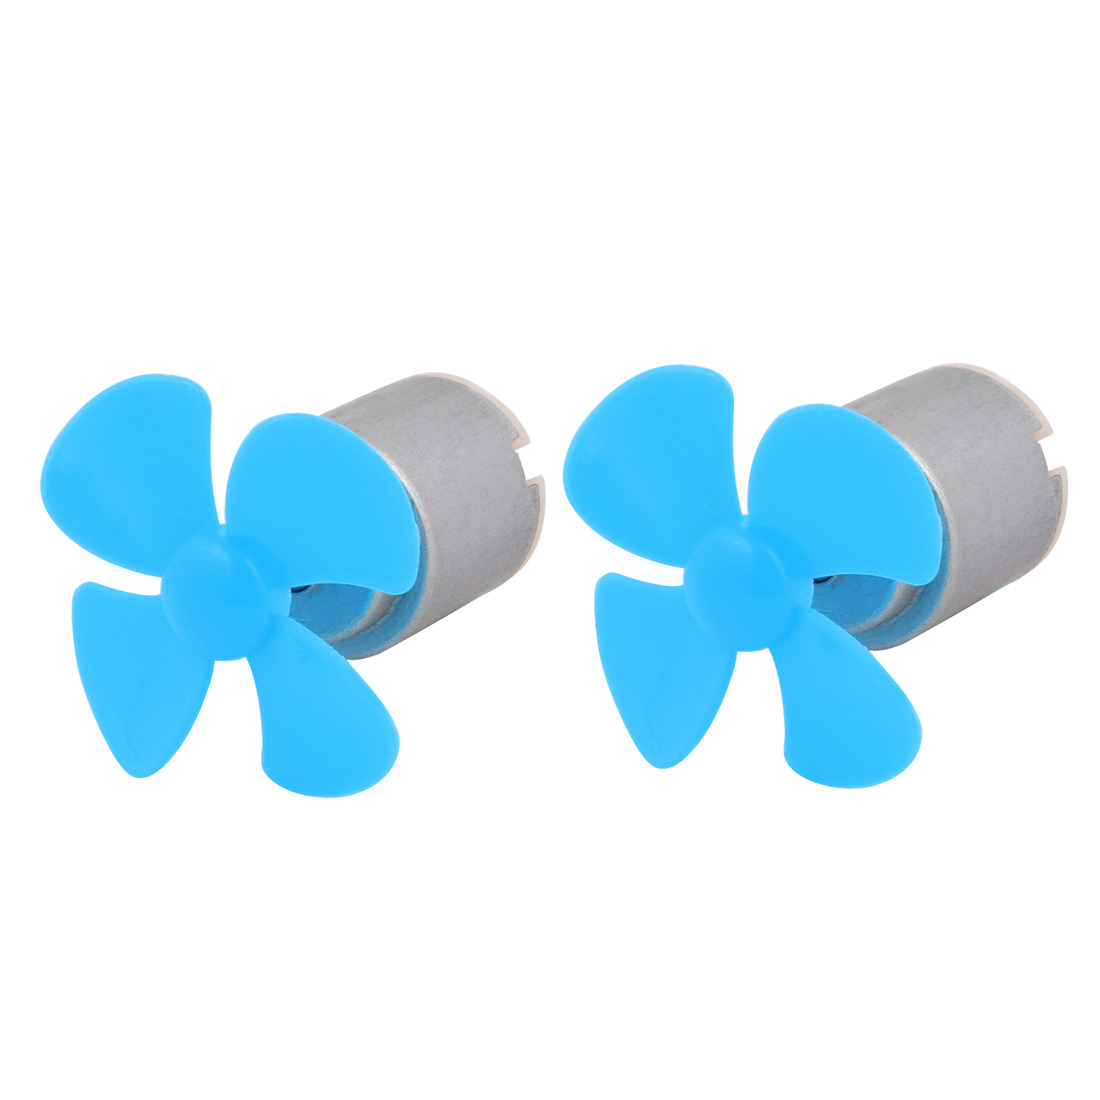 2Pcs DC 3V 9000RPM Large Torque Motor 4-Vane 40mm Dia Propeller Blue for RC Model